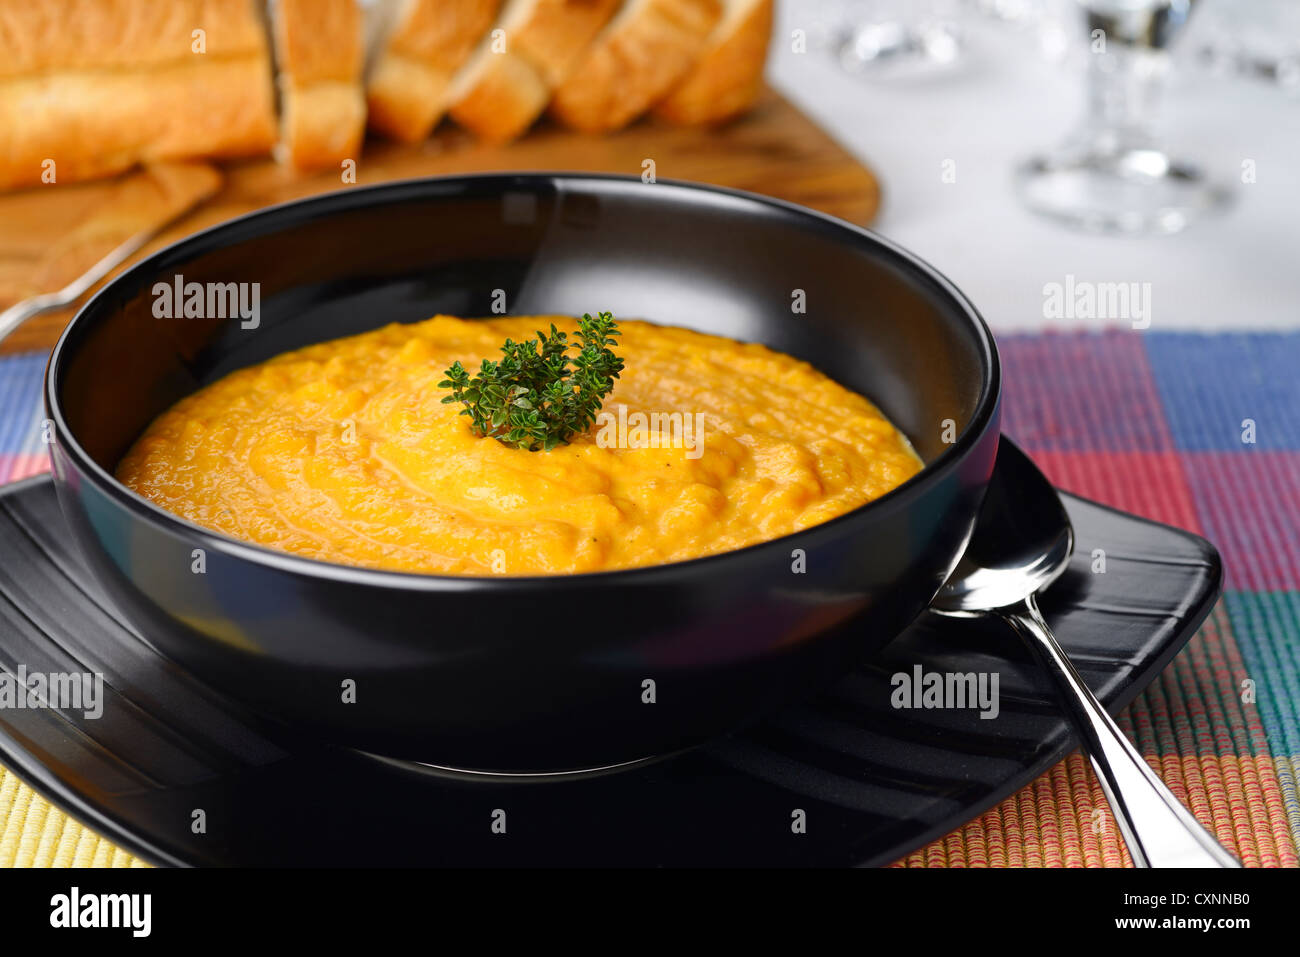 Cream carrot tomato orange soup with thyme garnish in black bowl with sliced bread - Stock Image